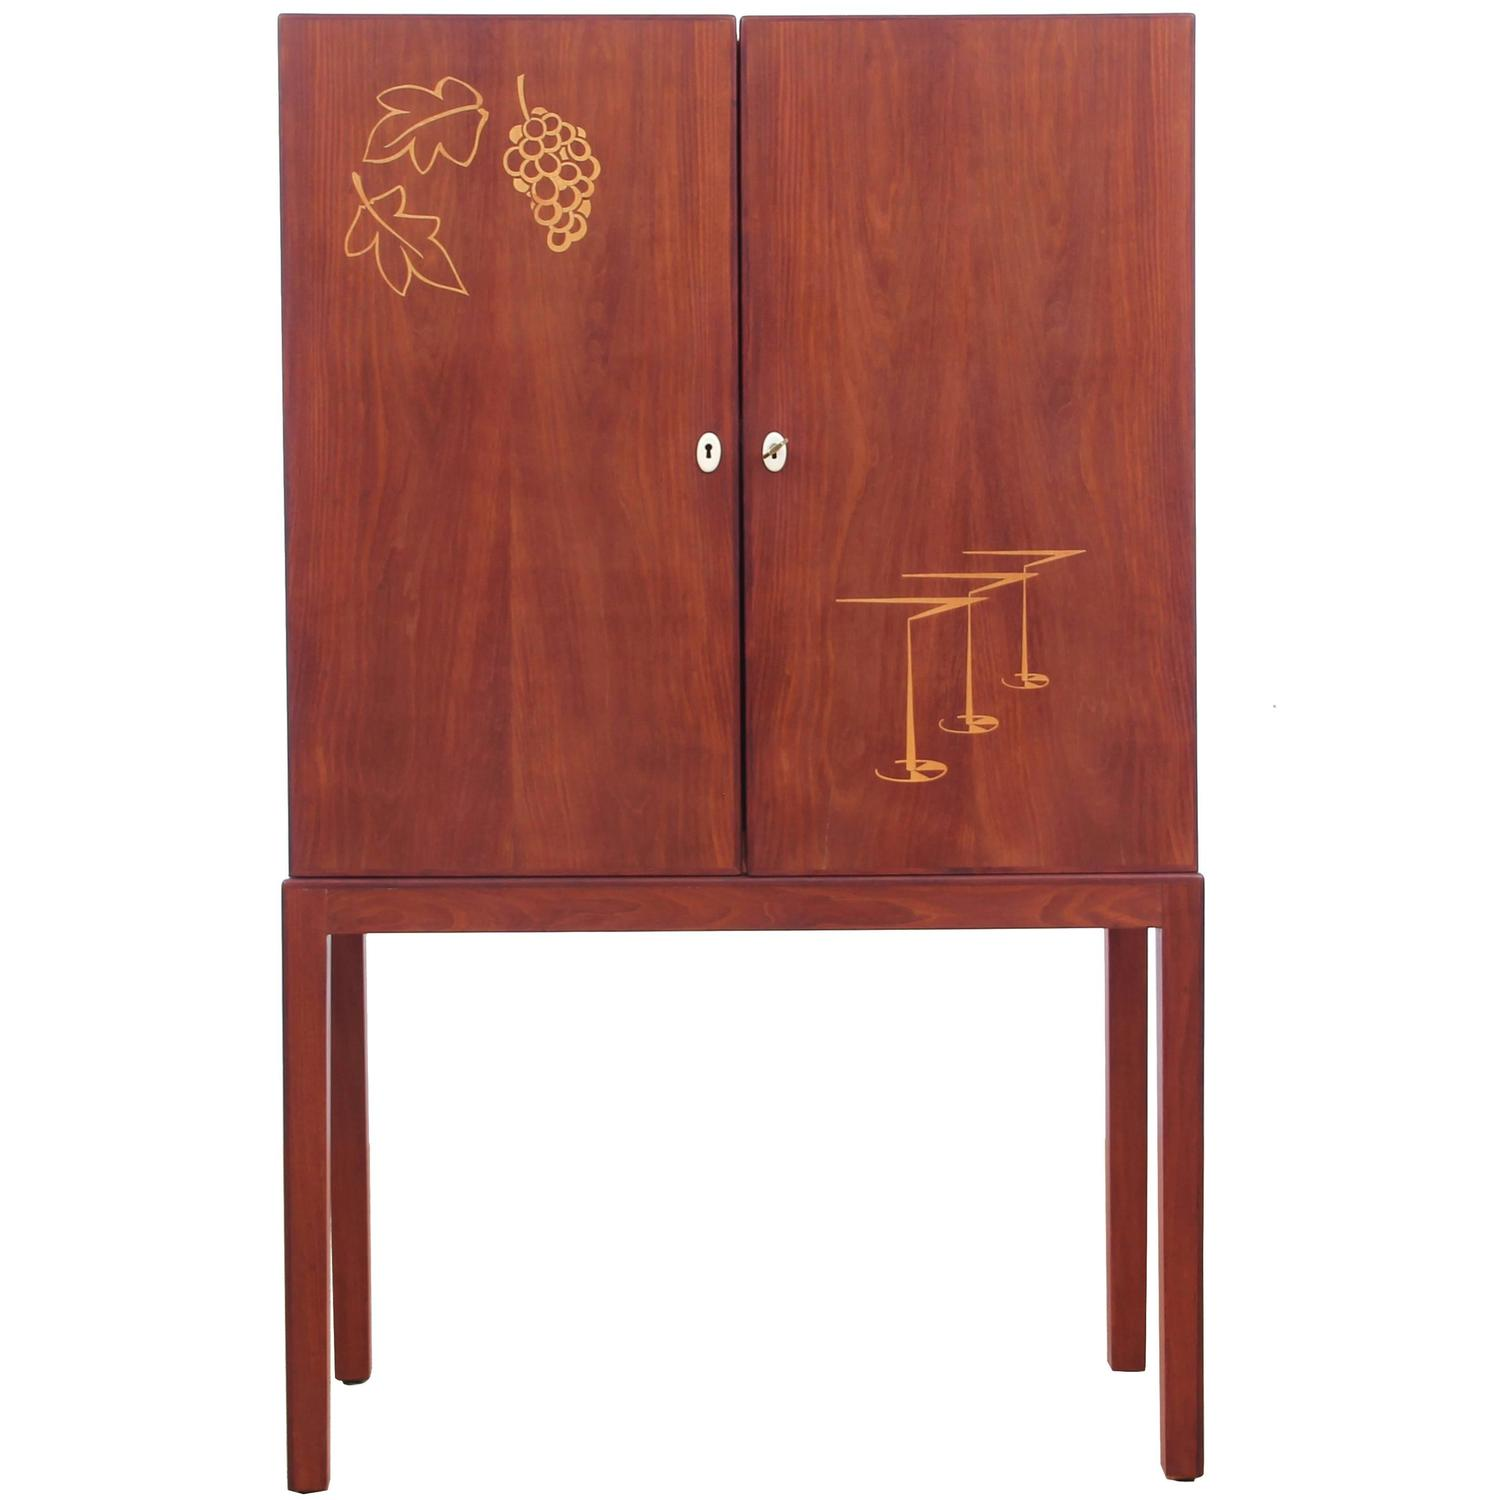 Mid century modern bar cabinet in teak for sale at 1stdibs for Modern teak kitchen cabinets